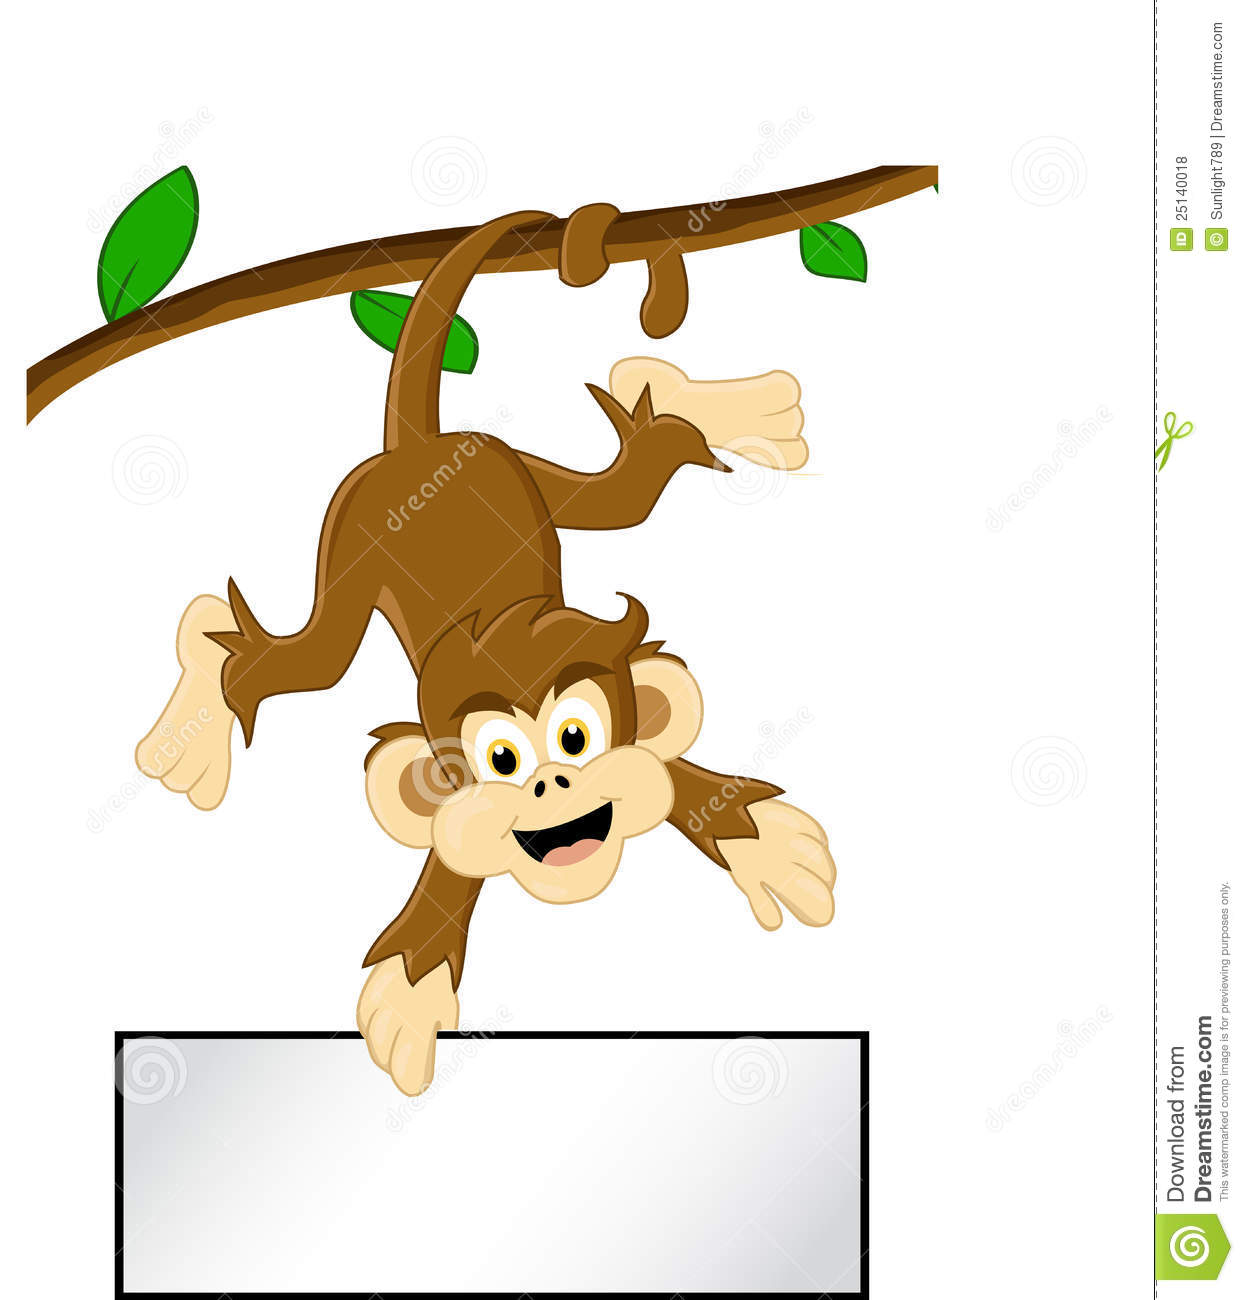 Monkey In A Tree Cartoon Clipart Panda Free Clipart Images